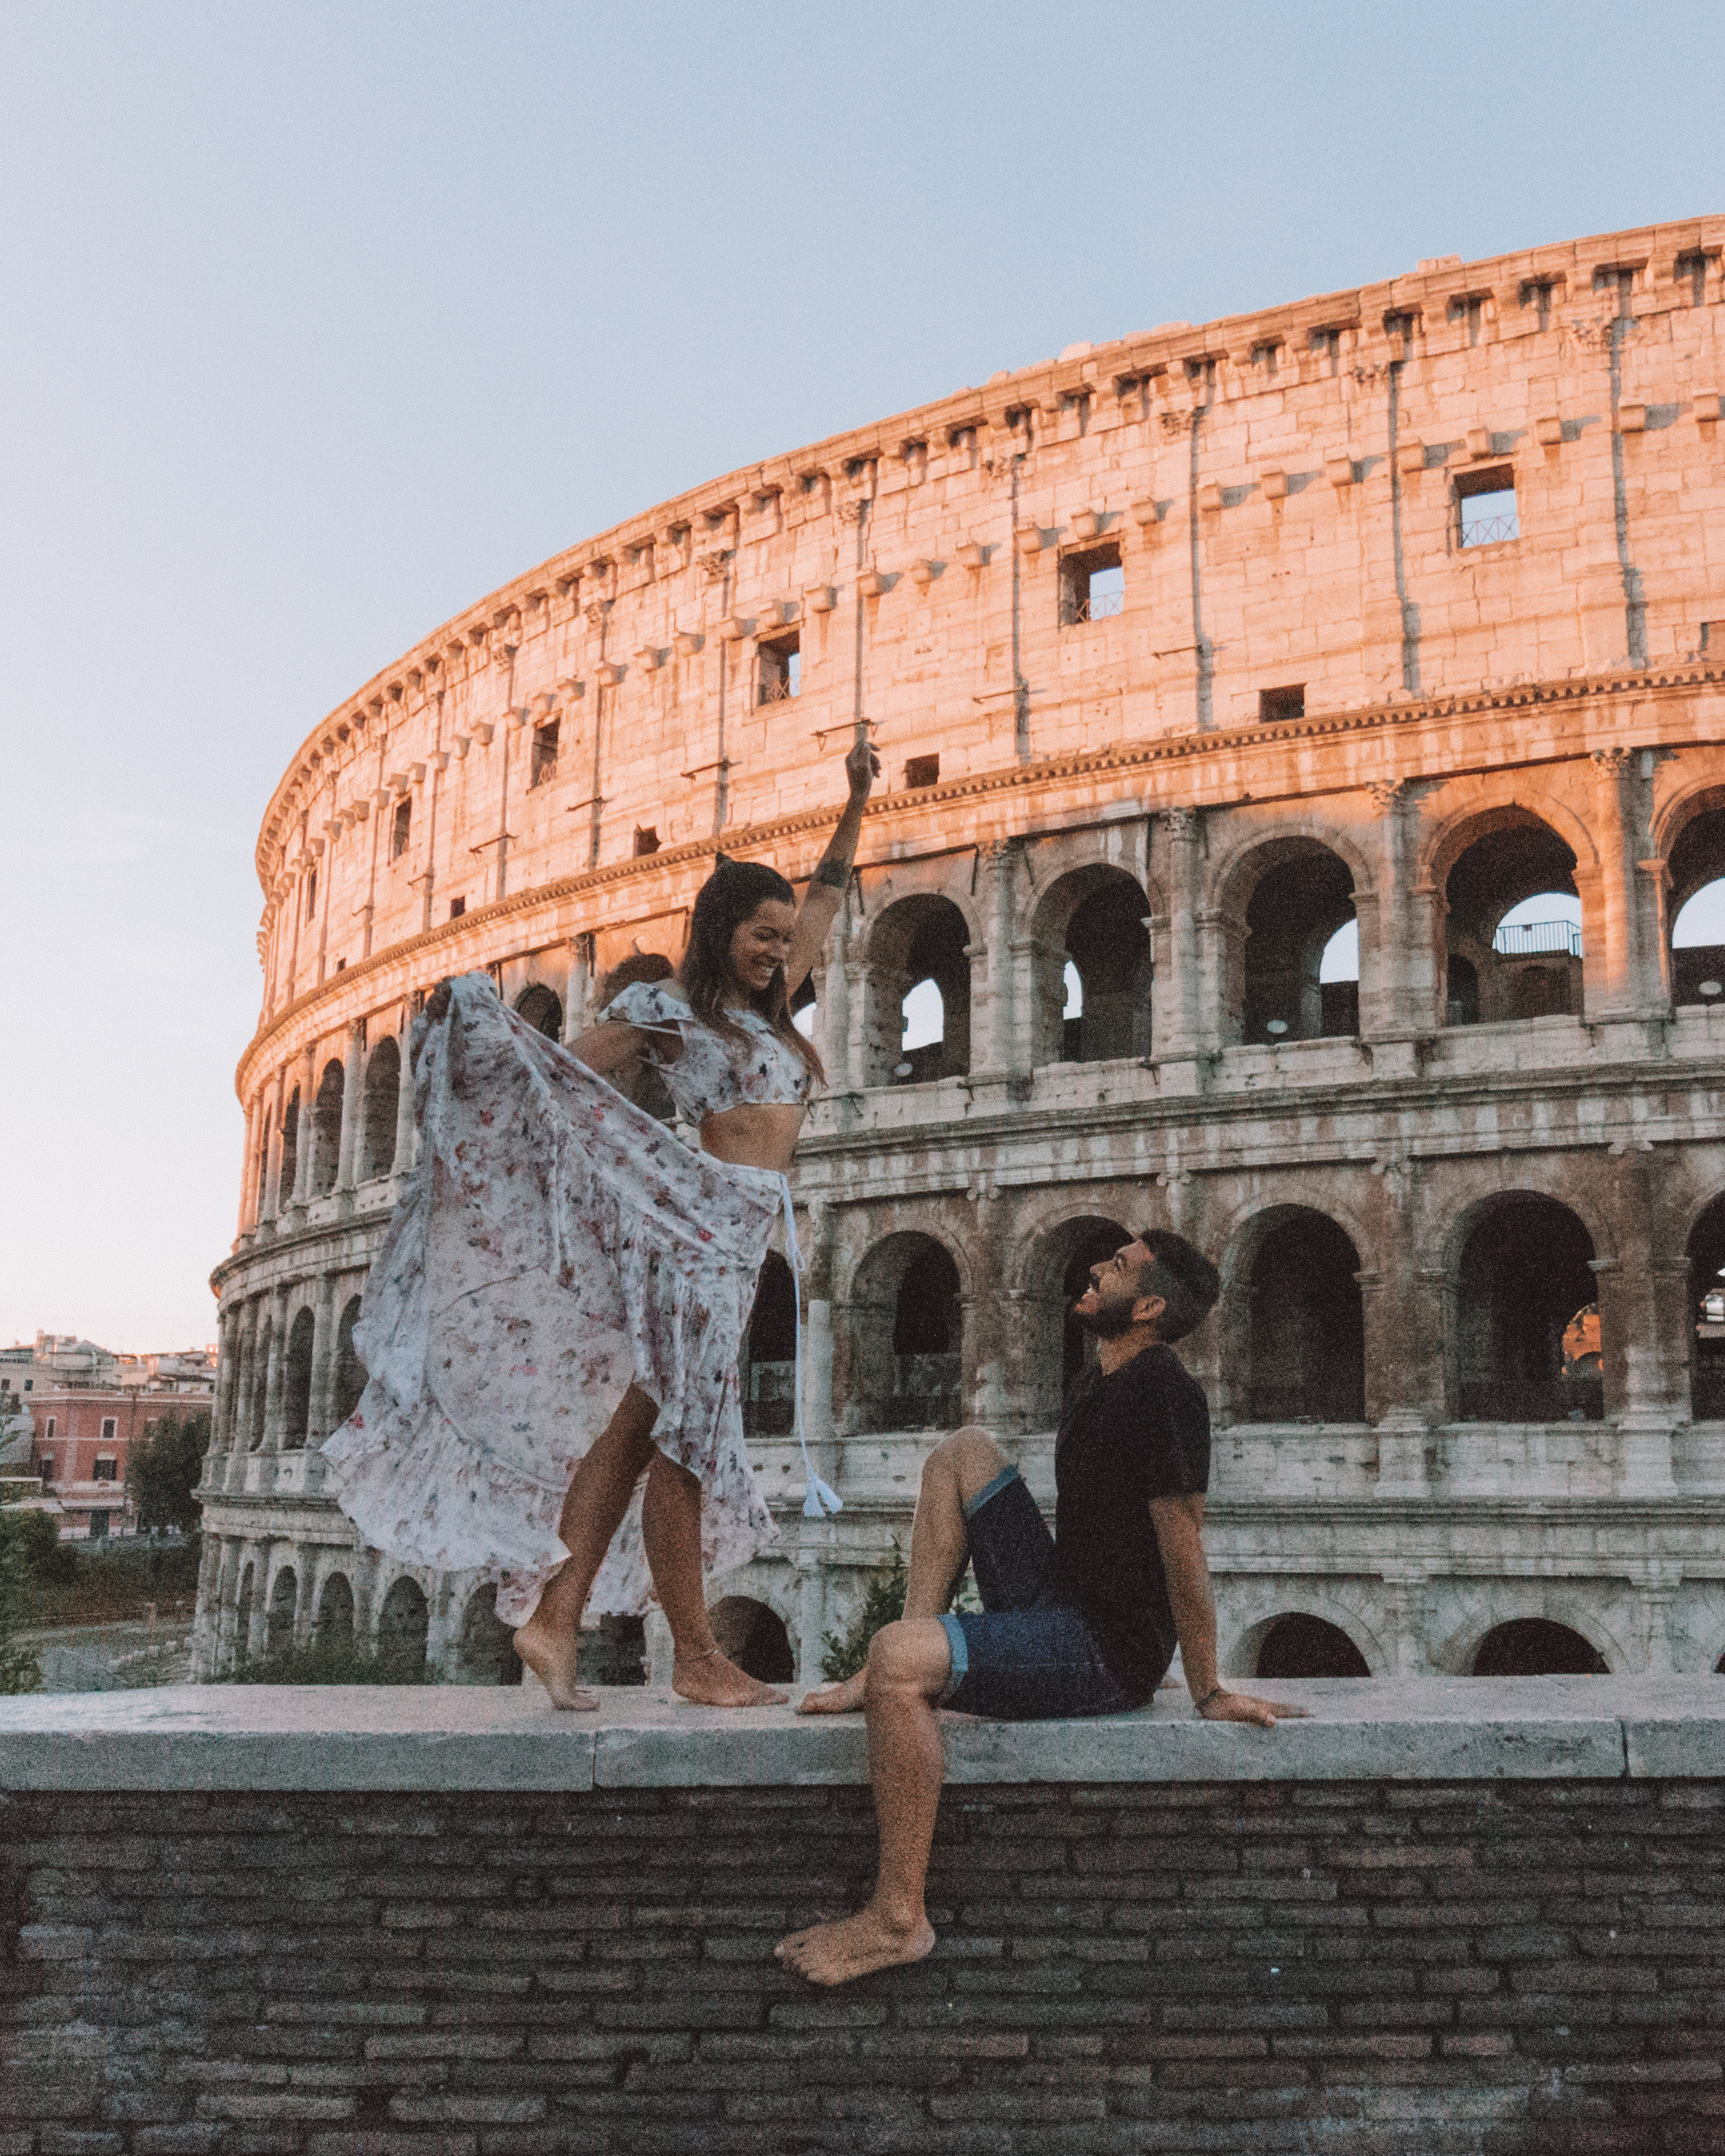 colosseo rome italy freeoversea travel couple world europe best places amazing buildings culture history photography